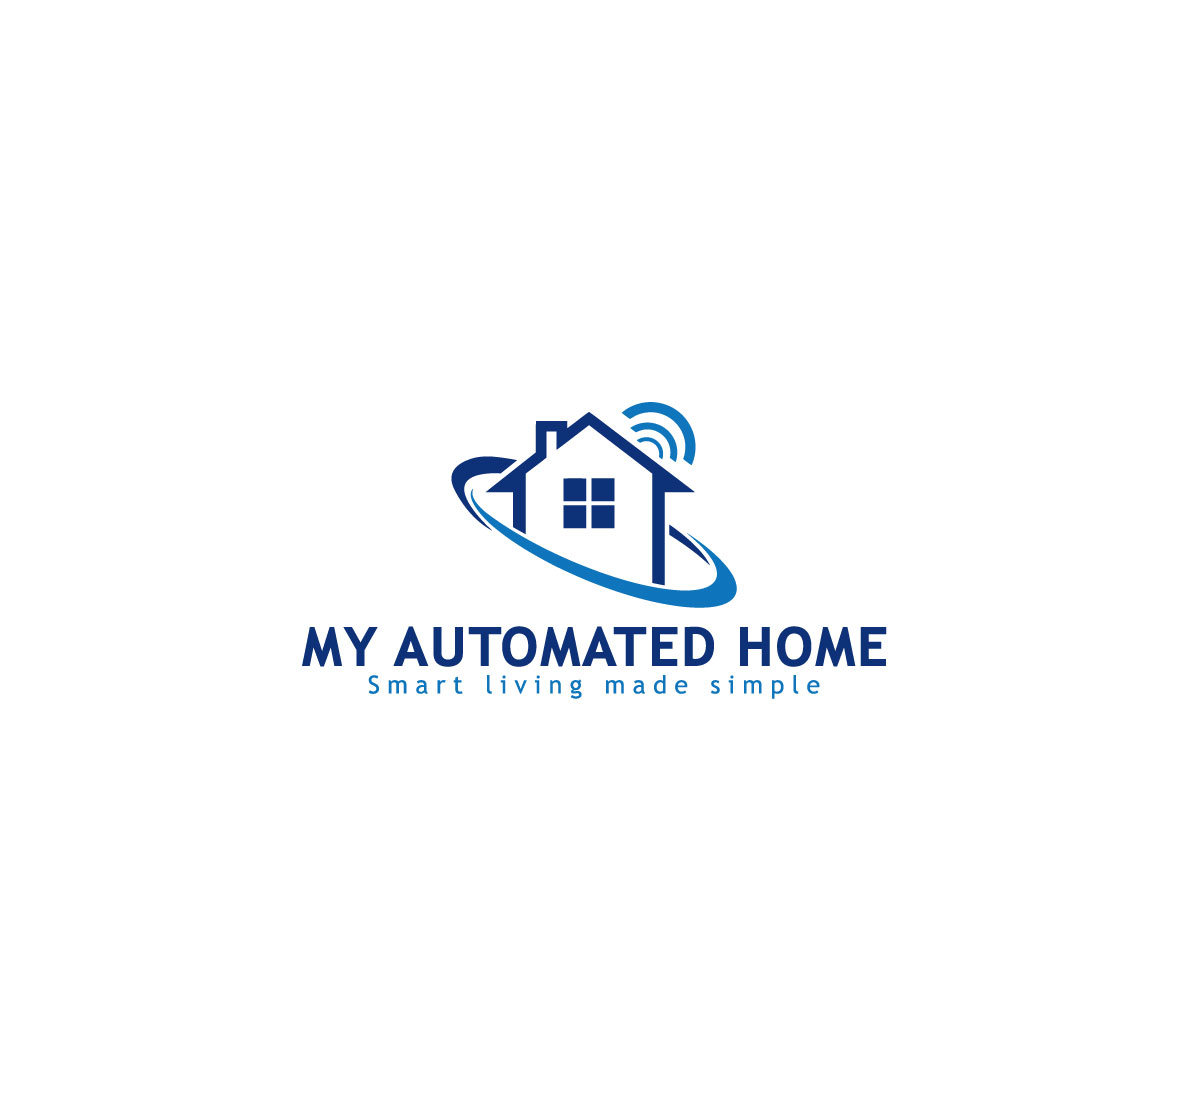 My Automated Home Logo by Setera